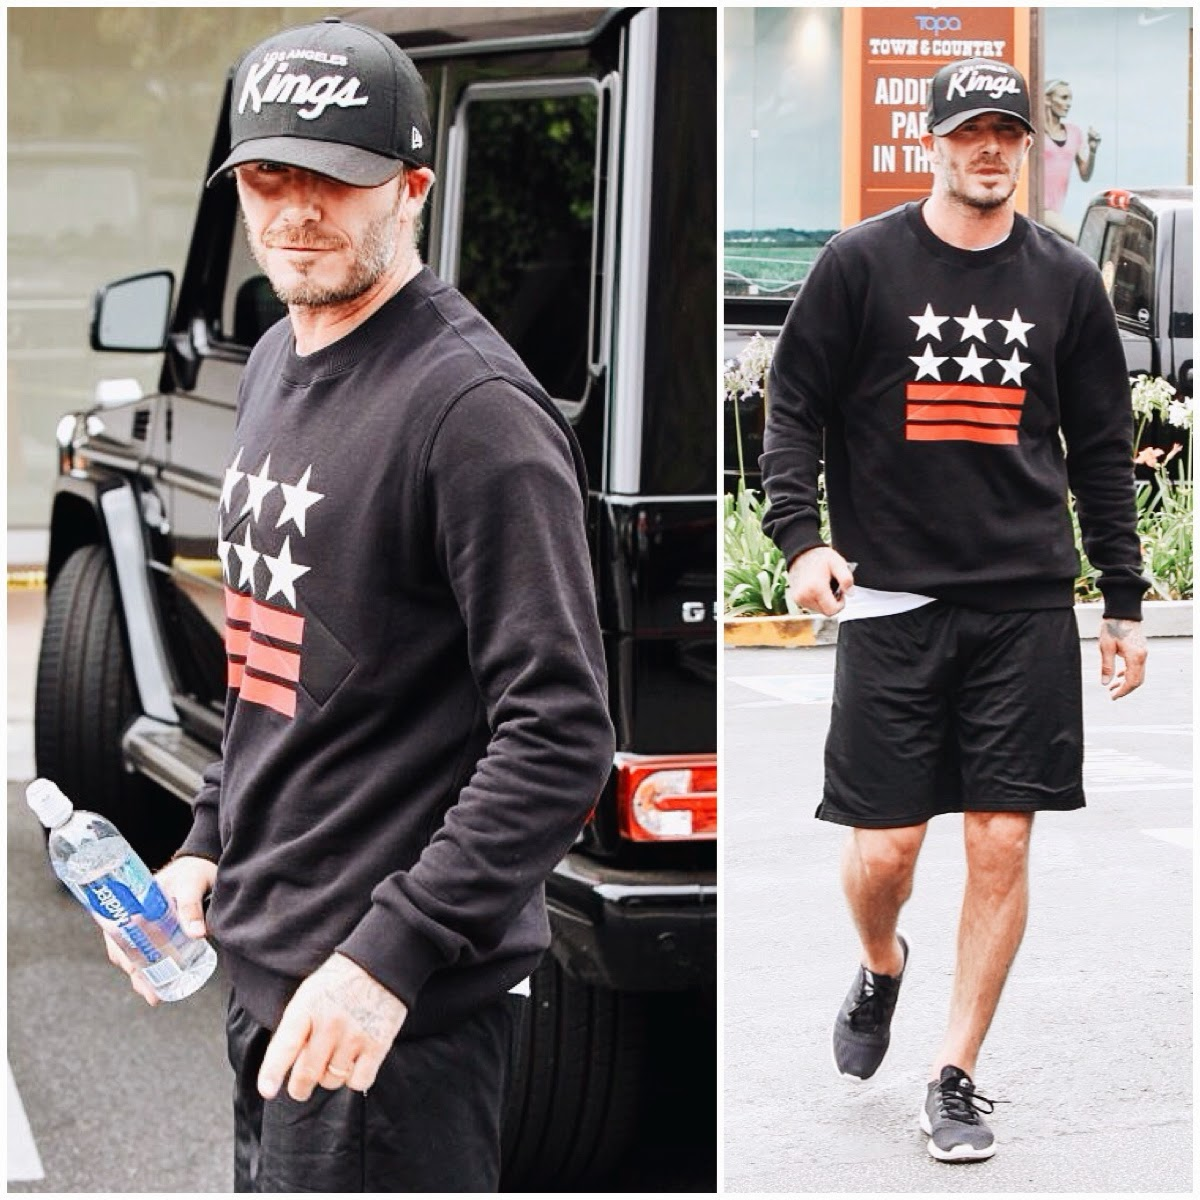 David Beckham in Givenchy stars stripes sweatshirt - Soul Cycle in Brentwood California on 15th July 2014